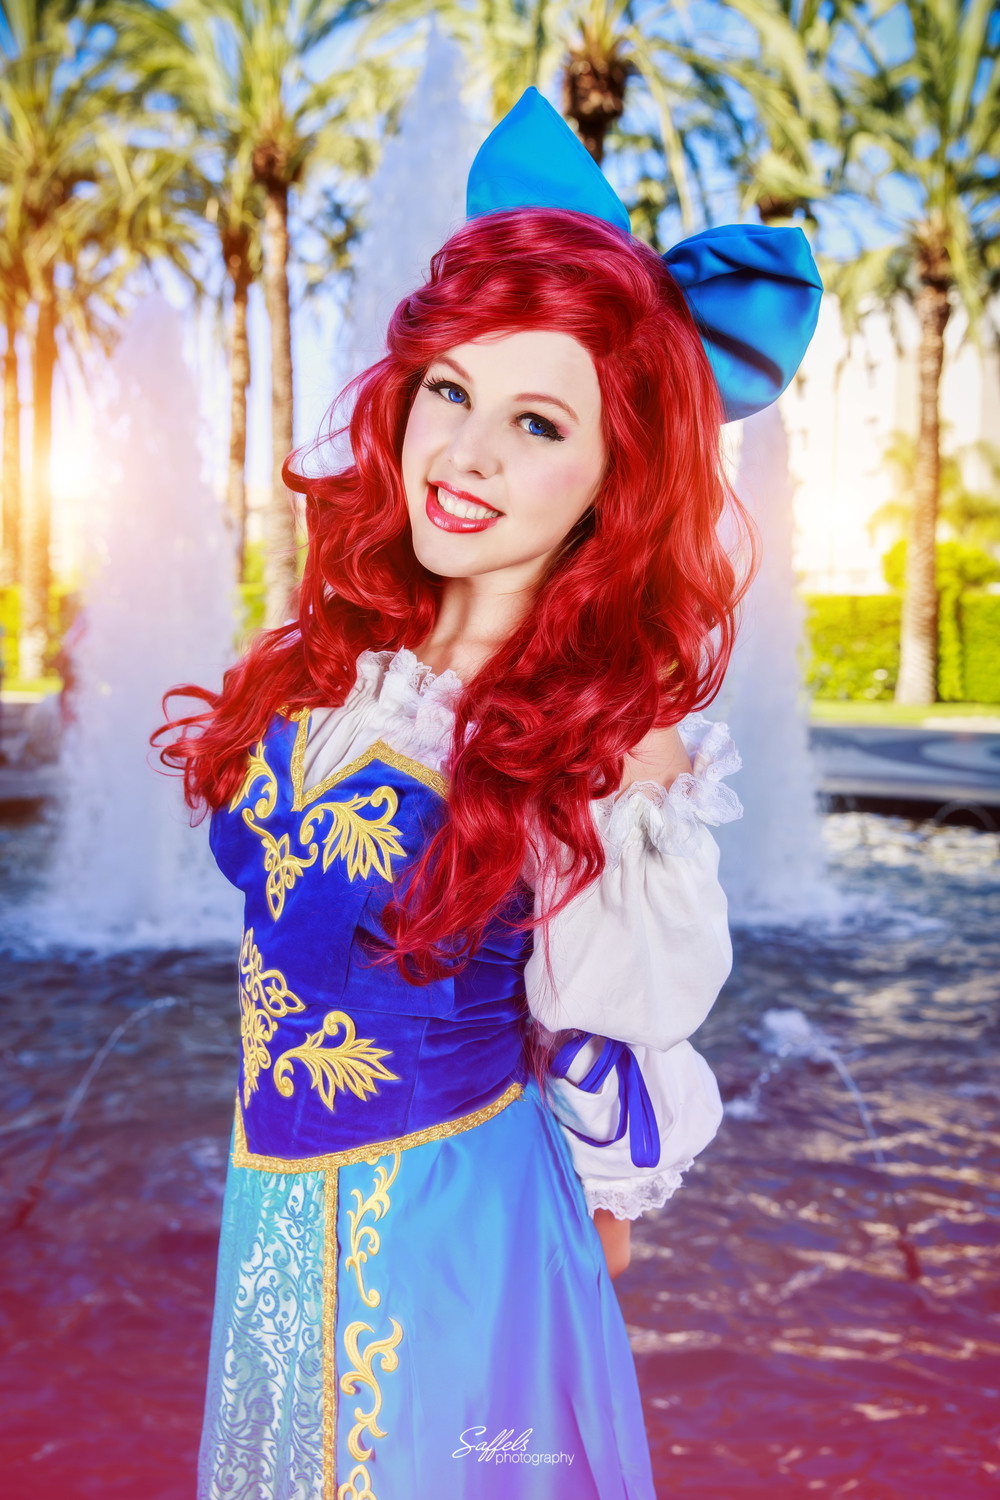 Courtoon as Ariel